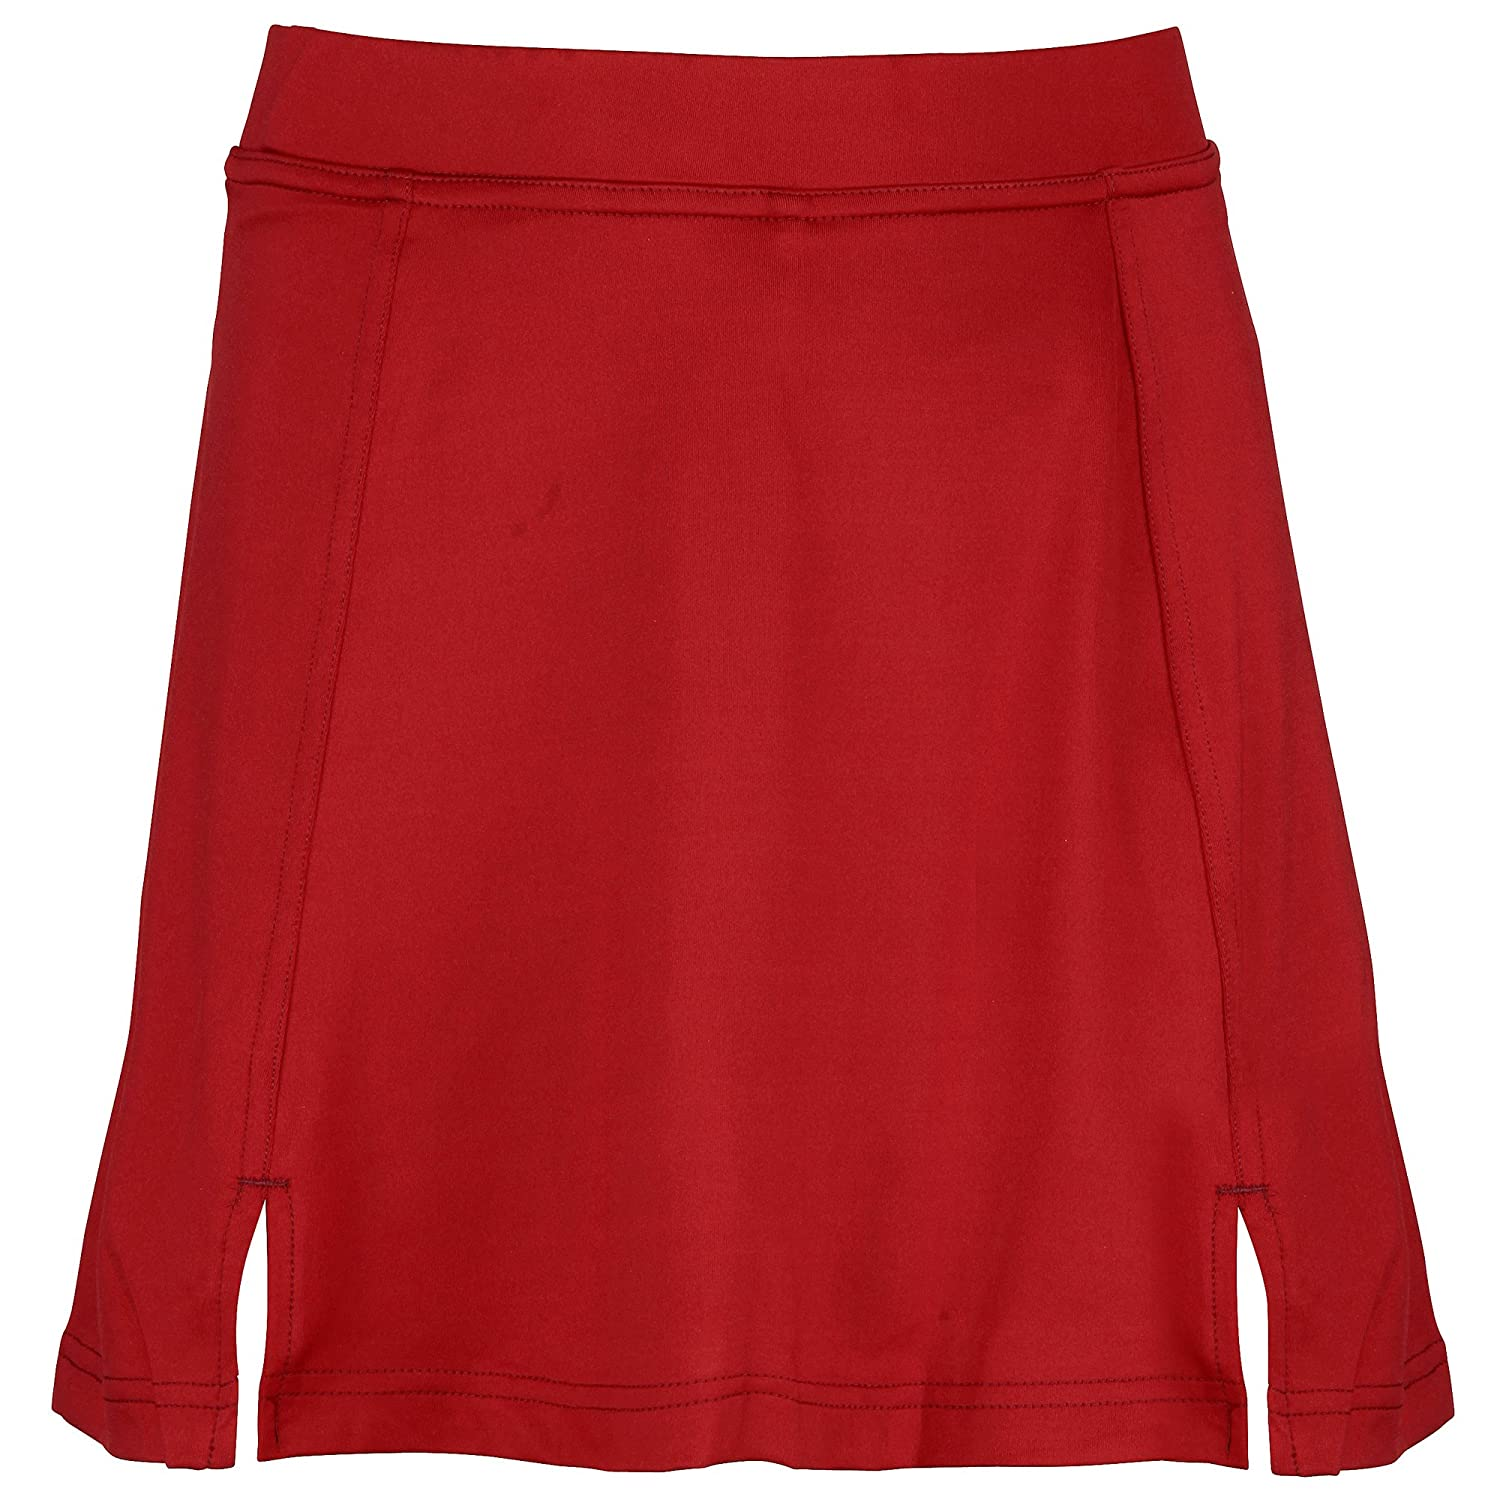 Rhino Girls Sports Performance Skort